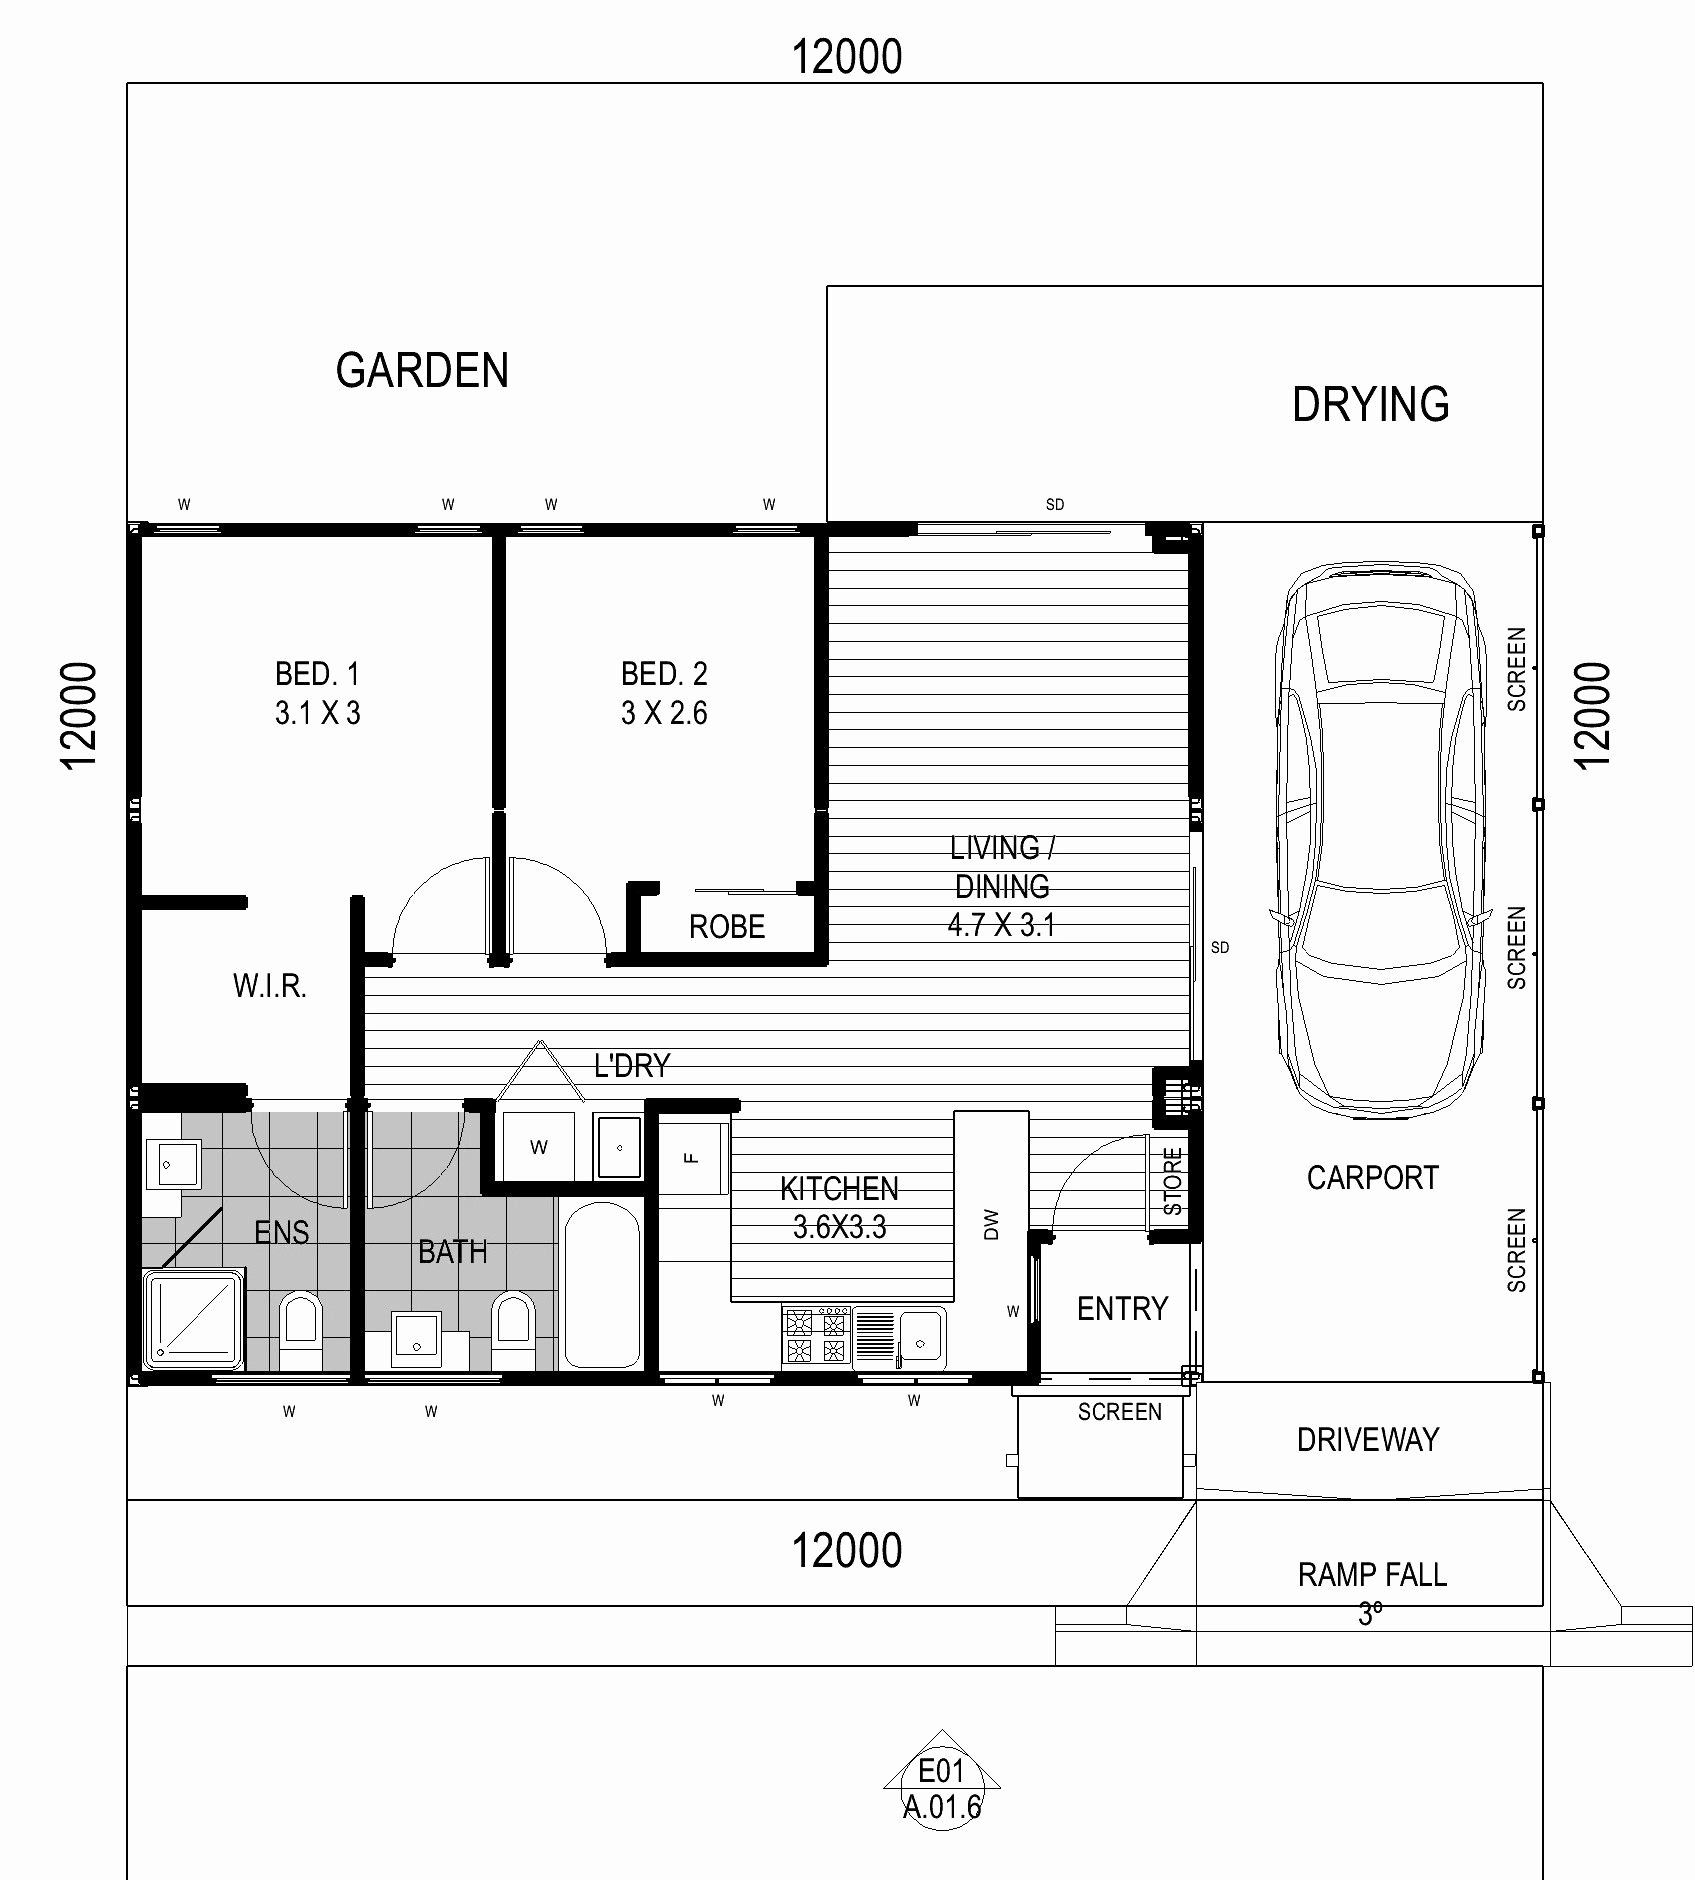 2 Bedroom Retirement House Plans New Image For 2 Bedroom Retirement House Plans Retirement House Plans Bedroom House Plans House Plans